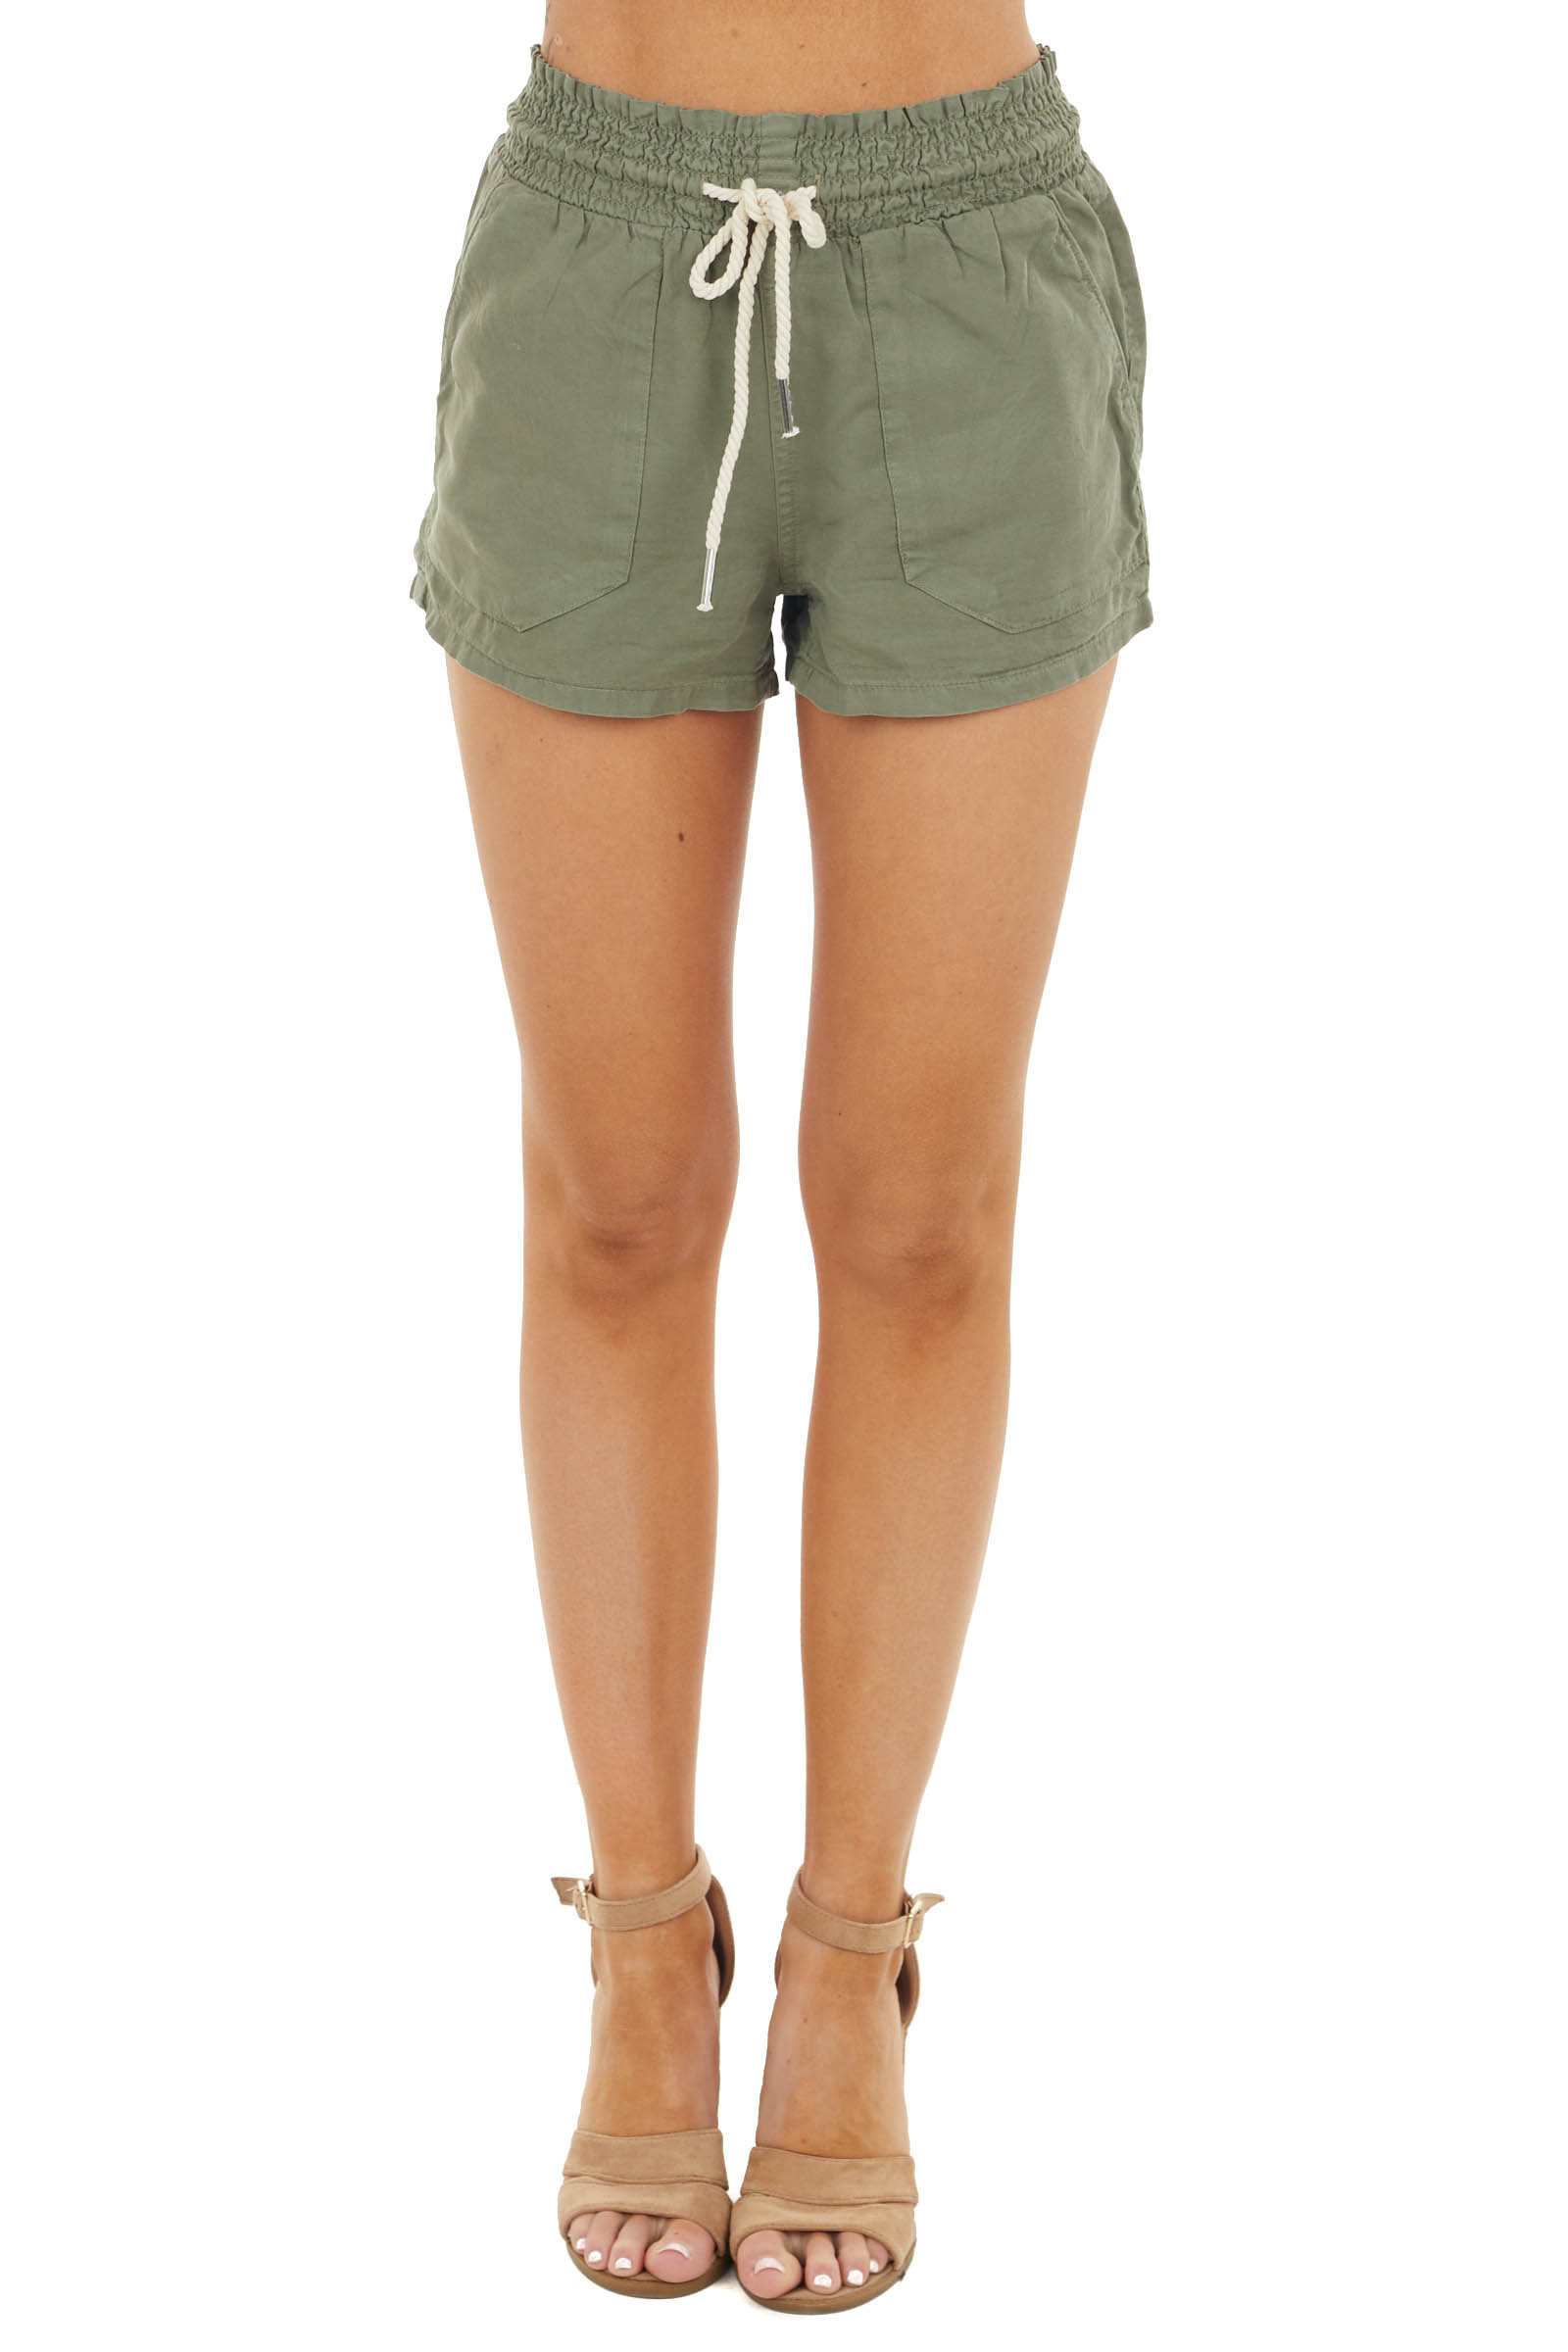 Olive Chambray Shorts with Smocked Waist and Tie Detail